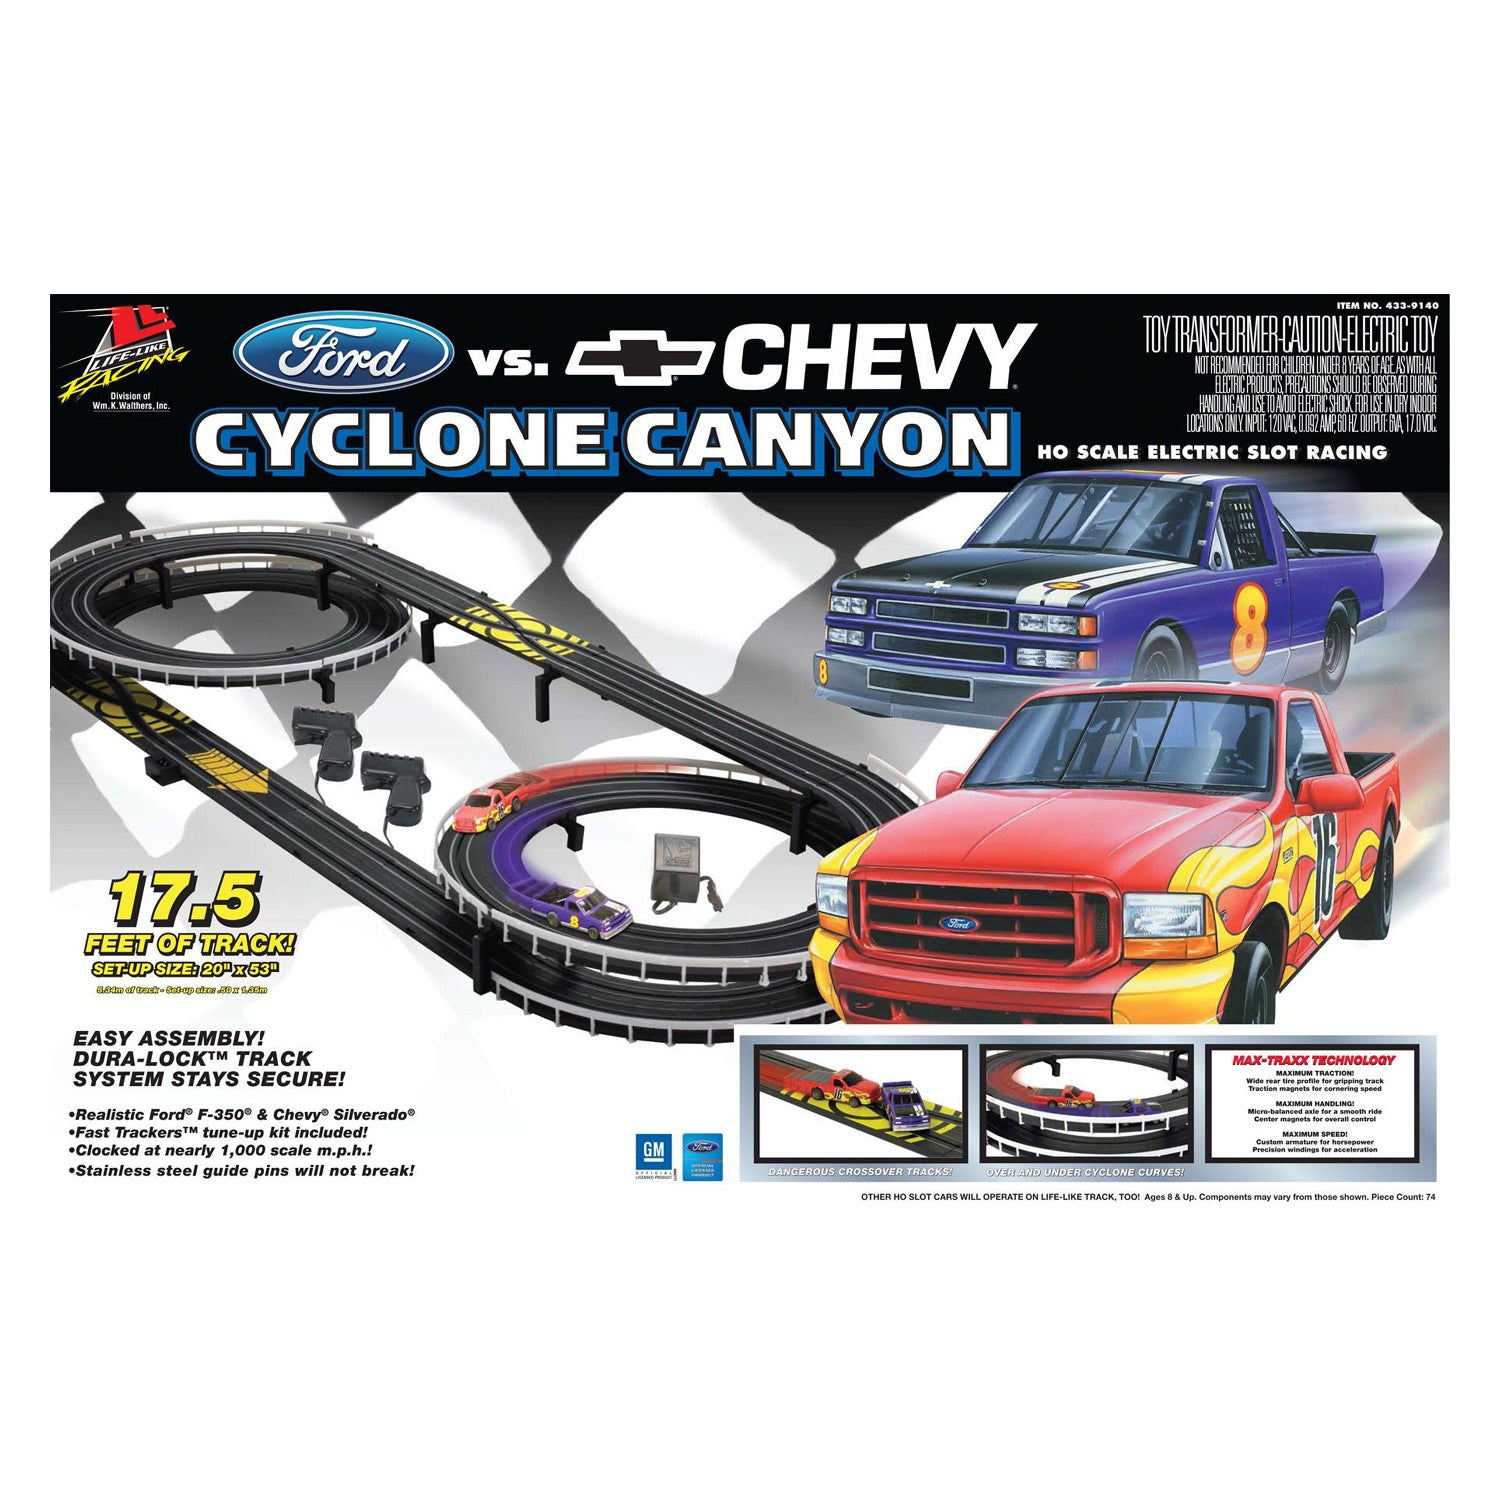 Ford vs Chevy Cyclone Canyon Slot Car Racing Set - Thumbnail 0